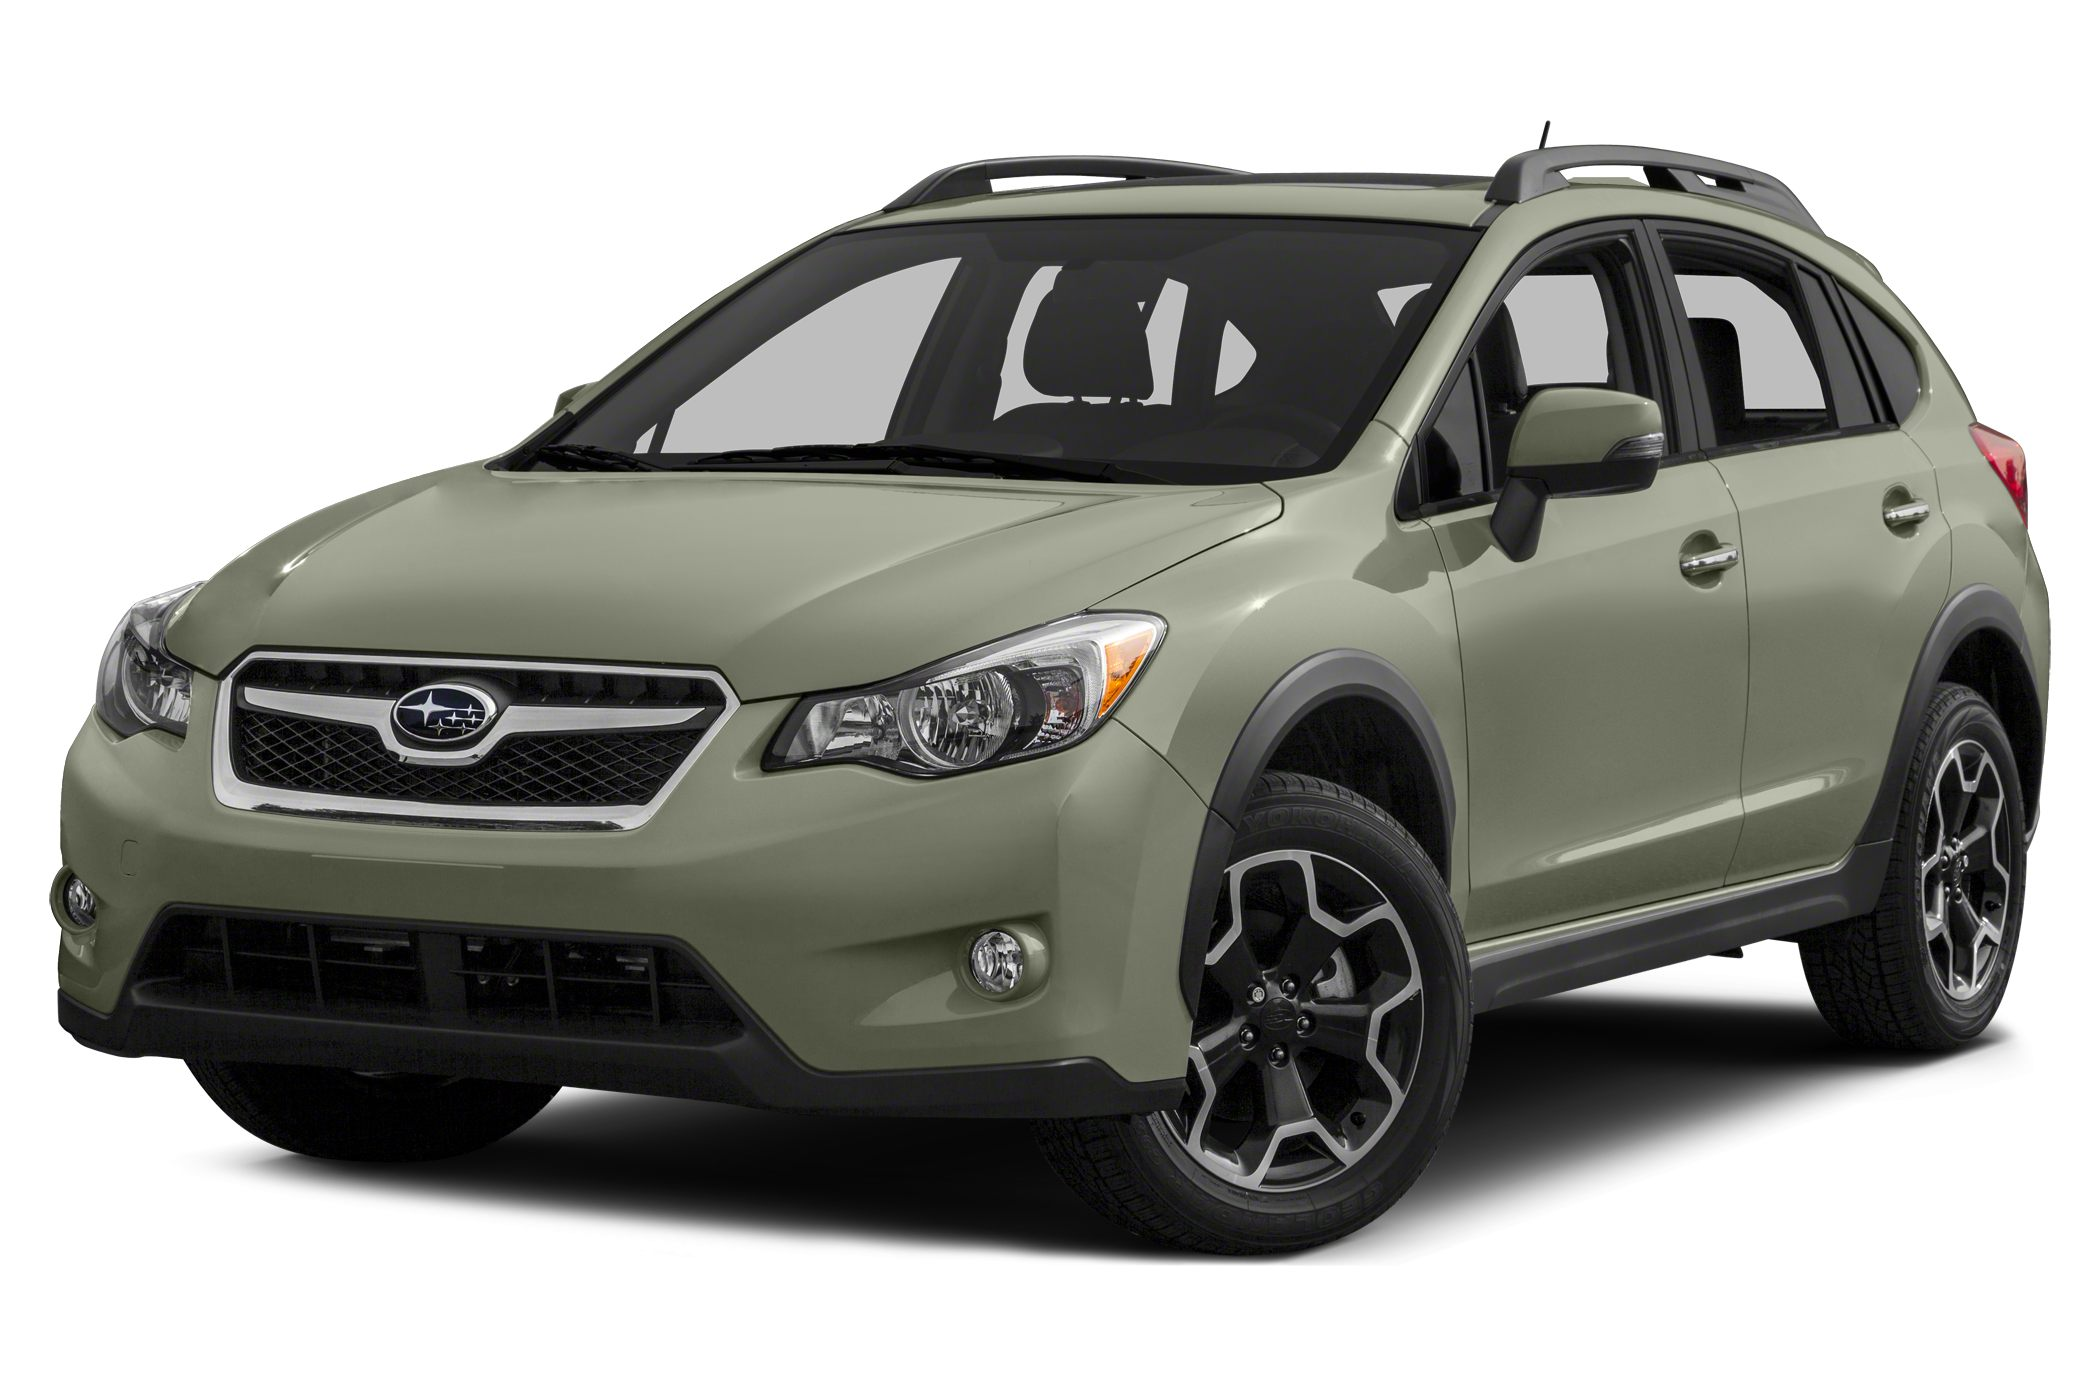 2014 Subaru XV Crosstrek 2.0i Premium Wagon for sale in Lynchburg for $23,937 with 4,027 miles.